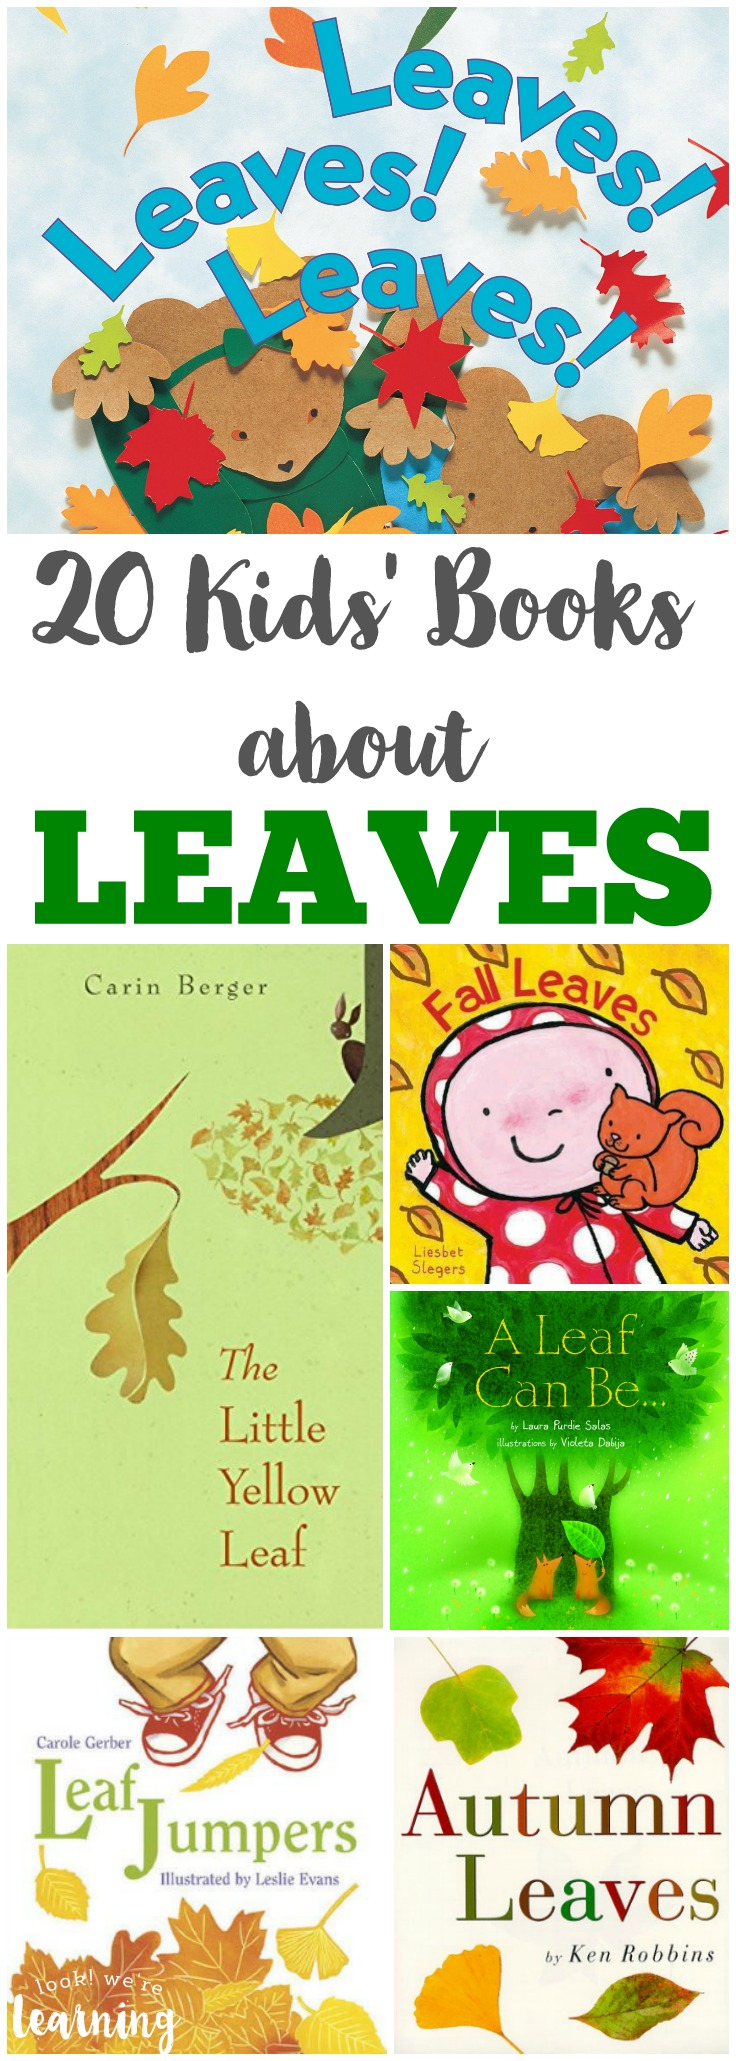 Share these books about leaves with the kids during storytime this autumn!